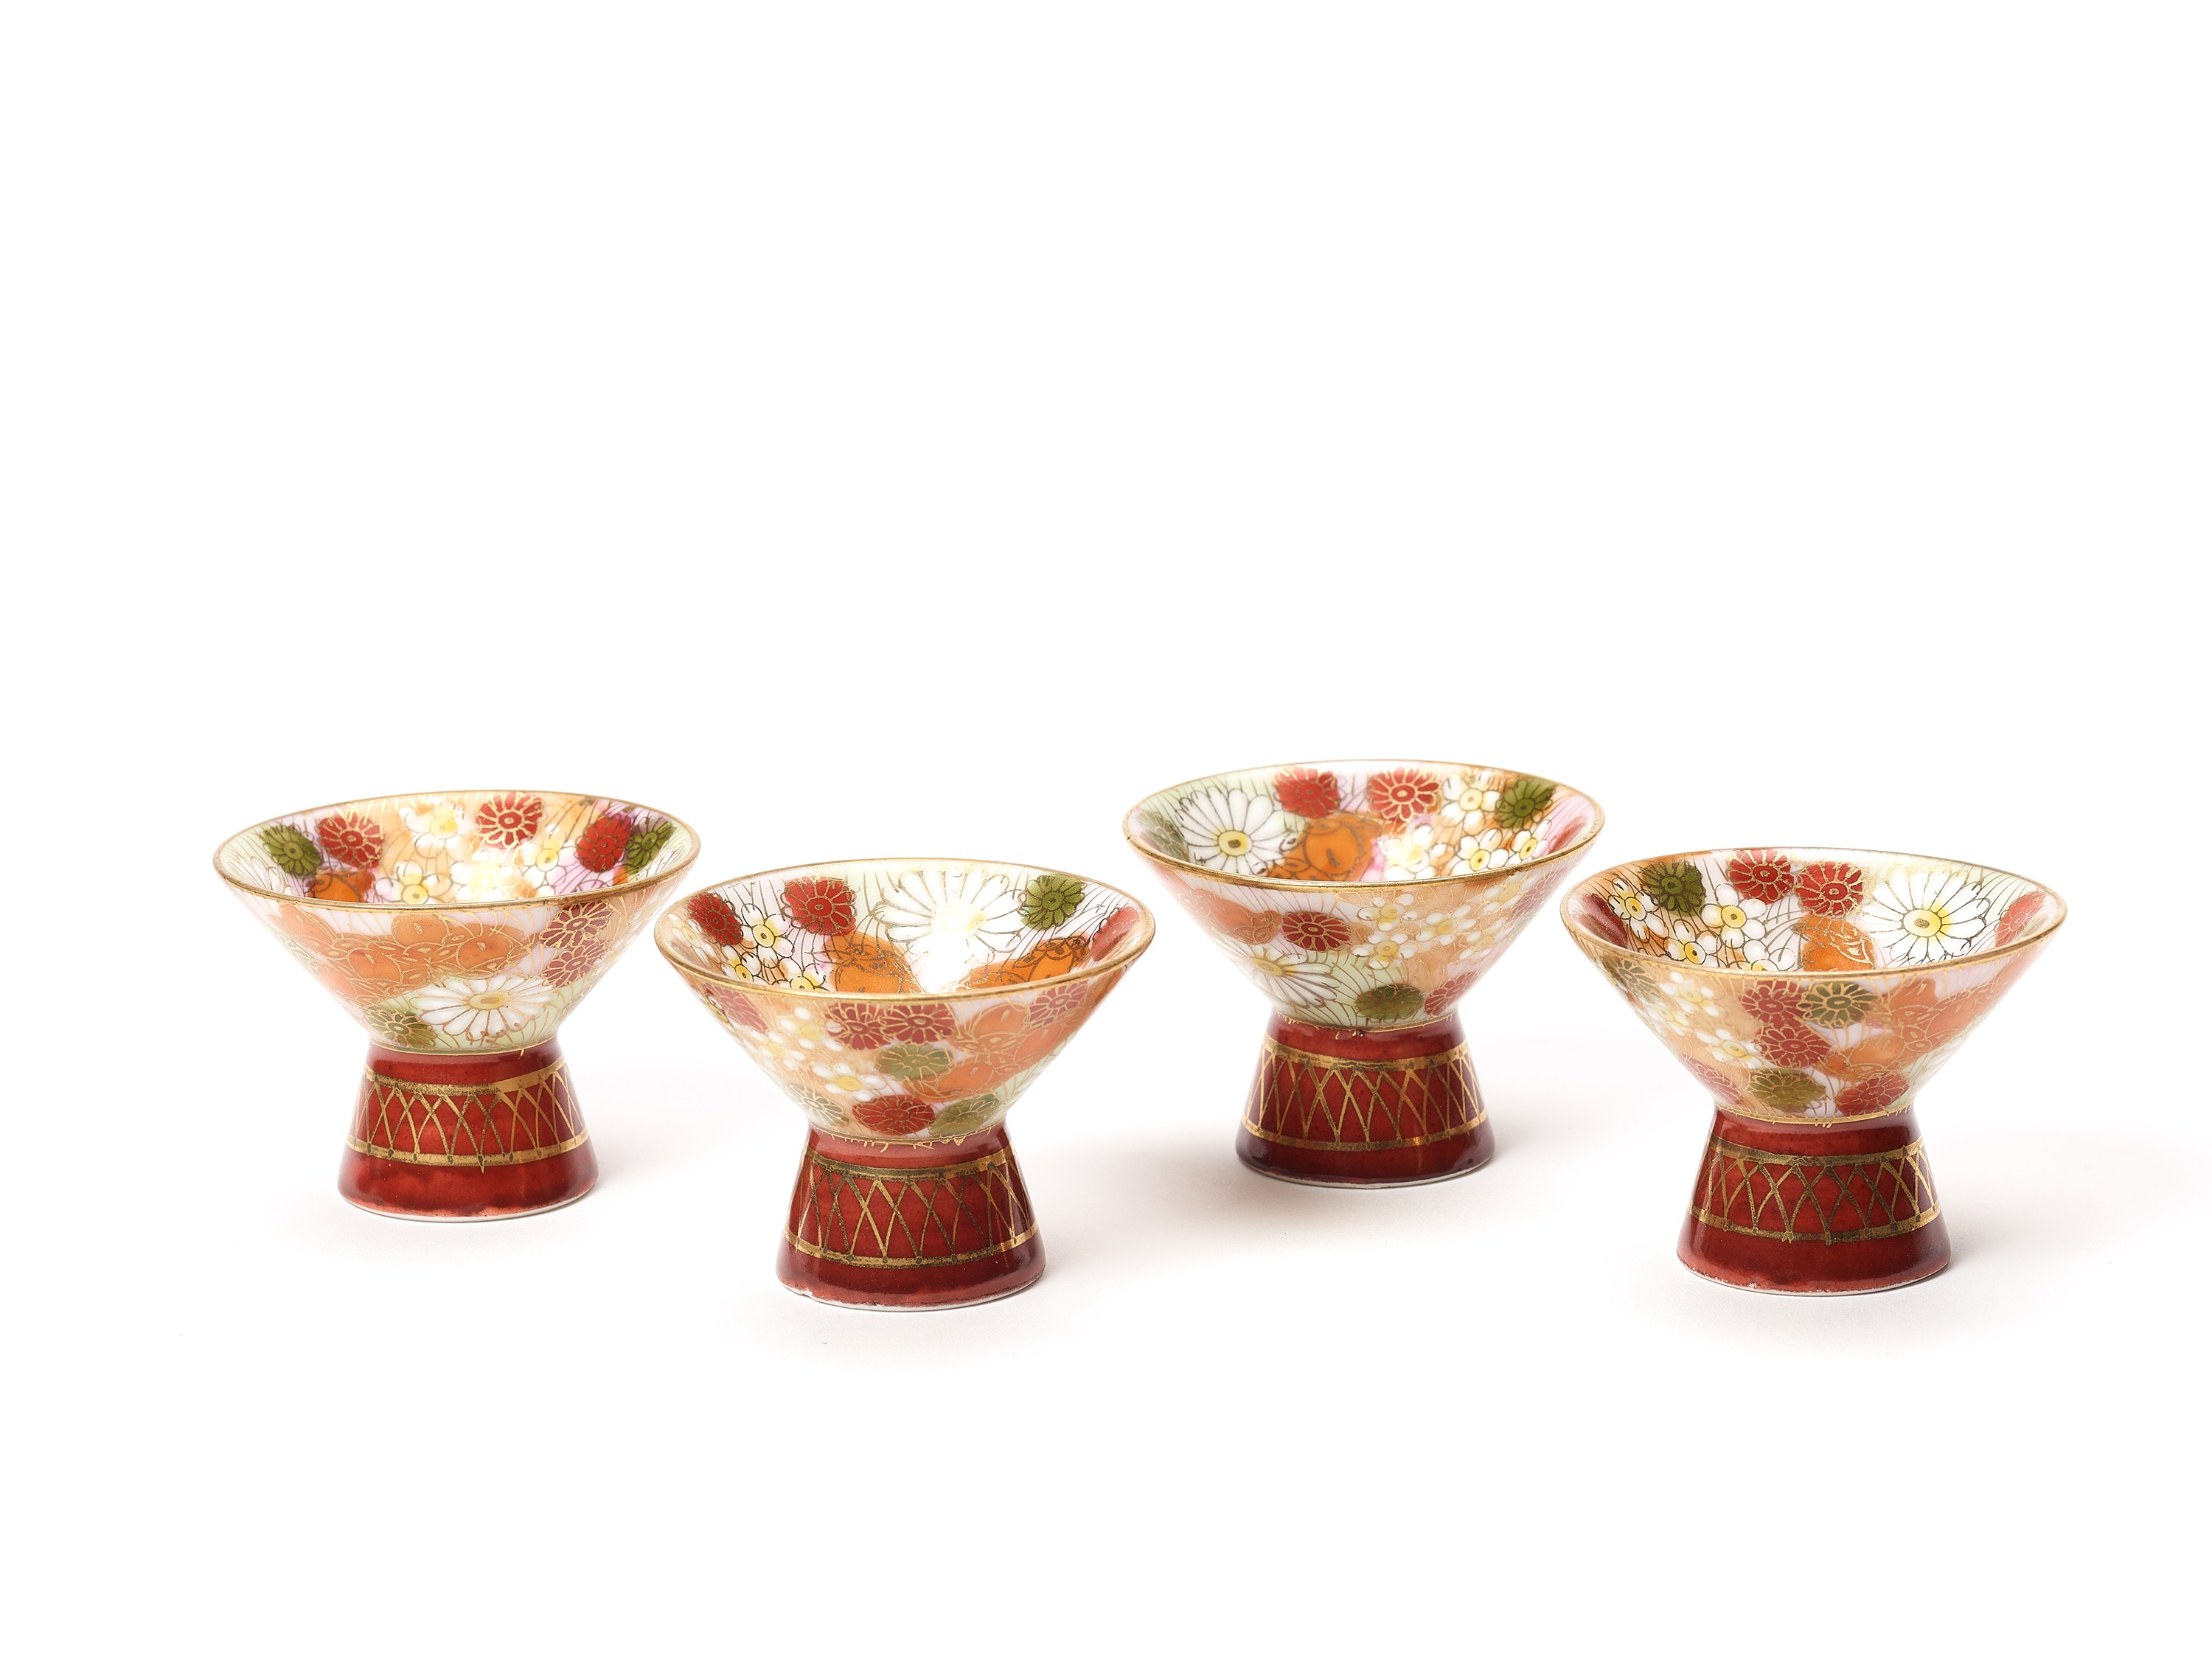 TWO SMALL VASES, SIGNED SHUSAN, AND FOUR SAKE CUPS WITH FLORAL DECORATIONS - Image 6 of 8